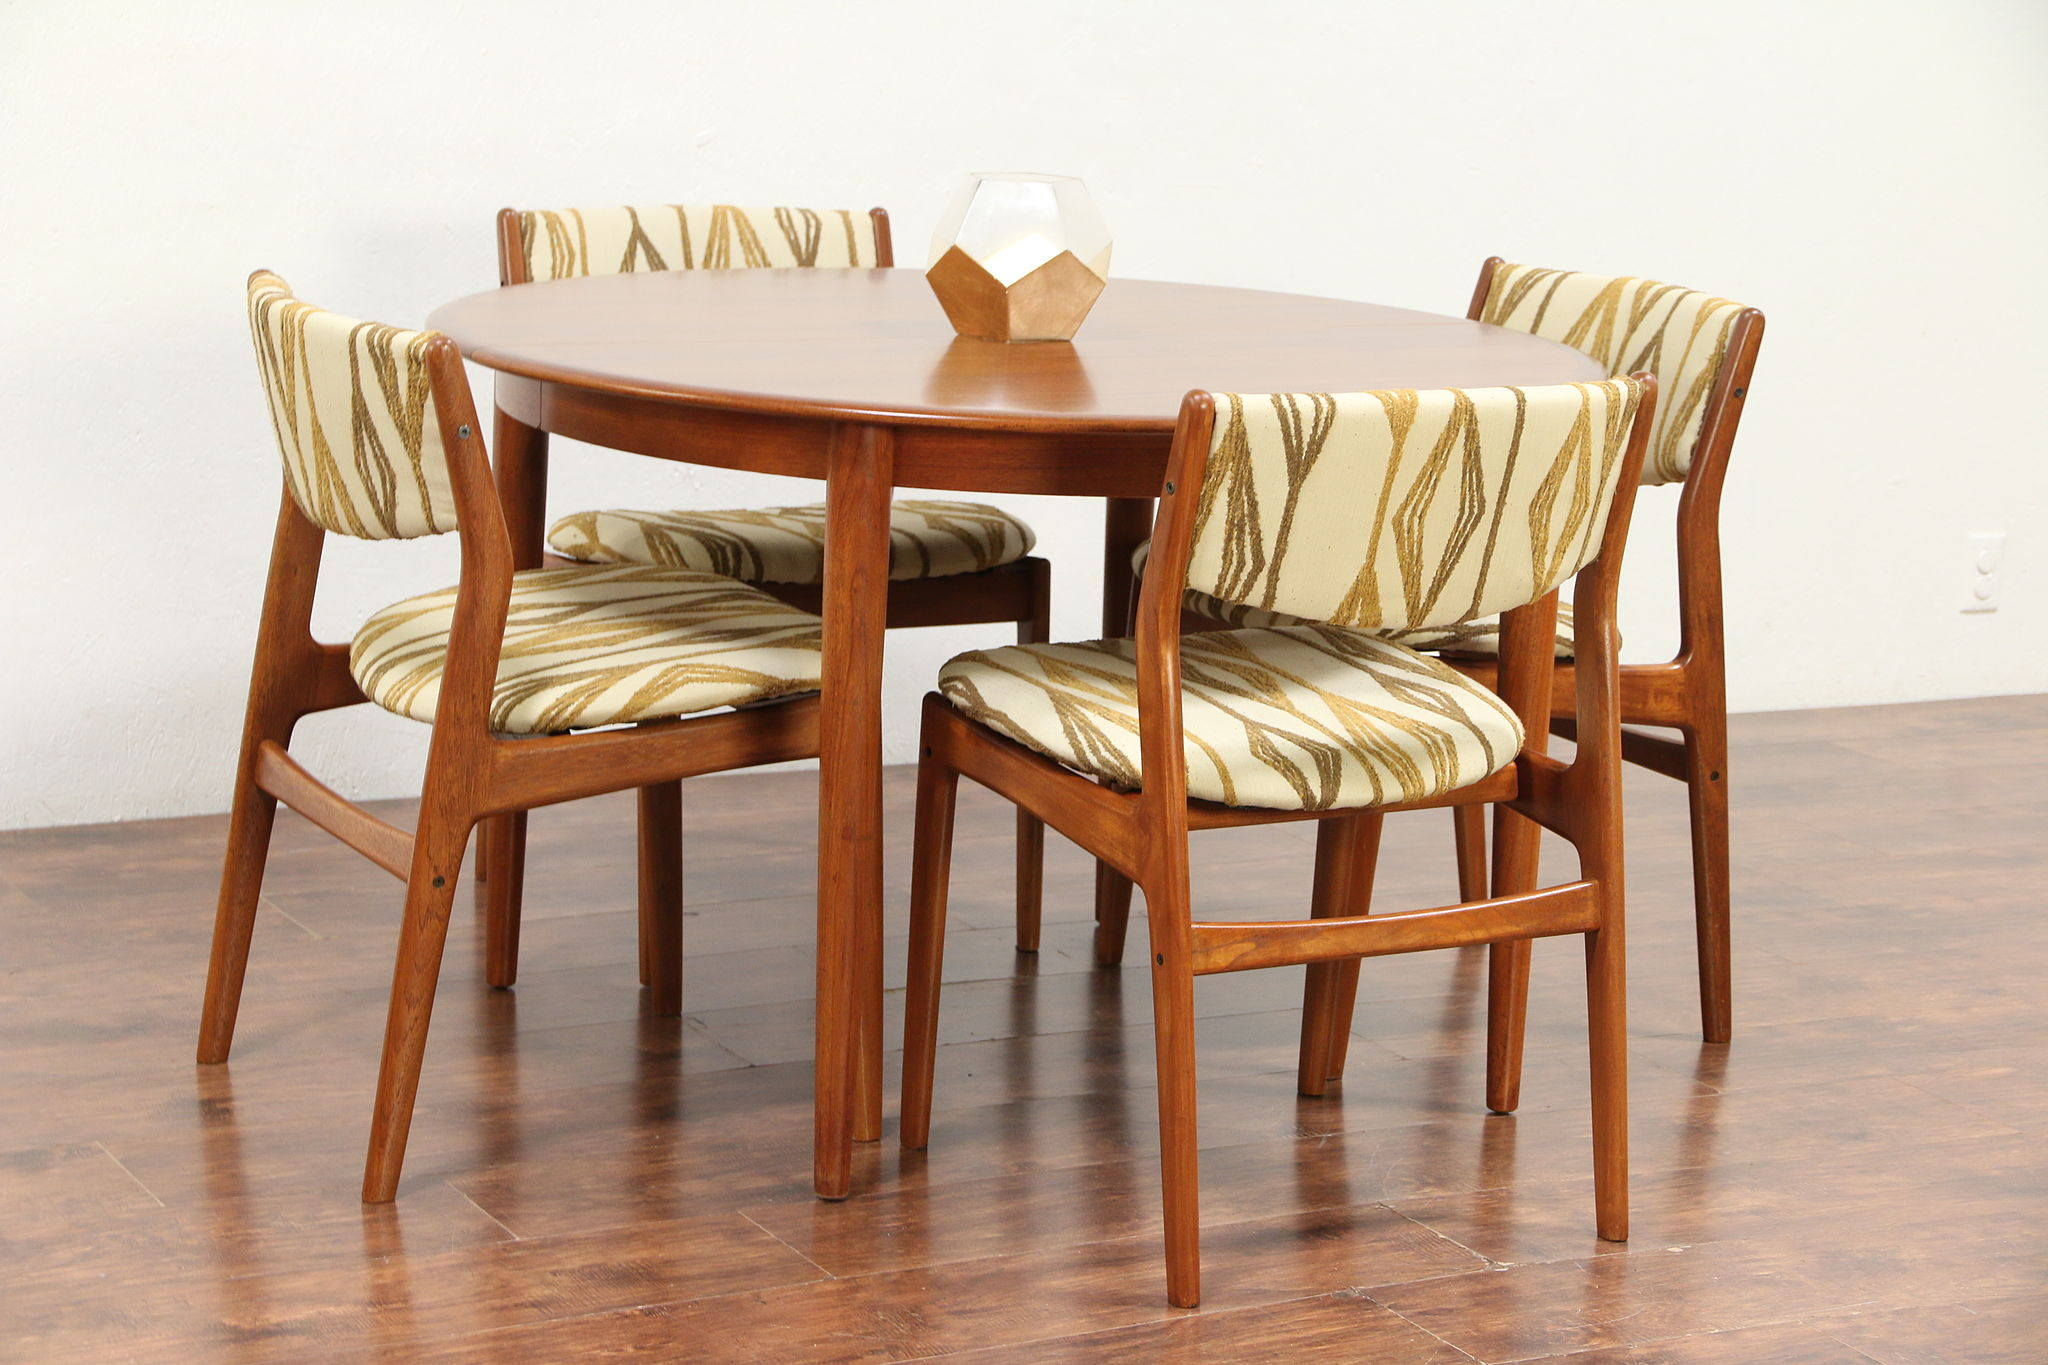 Modern Dining Set Midcentury Modern Danish Teak Dining Set Table 4 Chairs Glostrup 29717